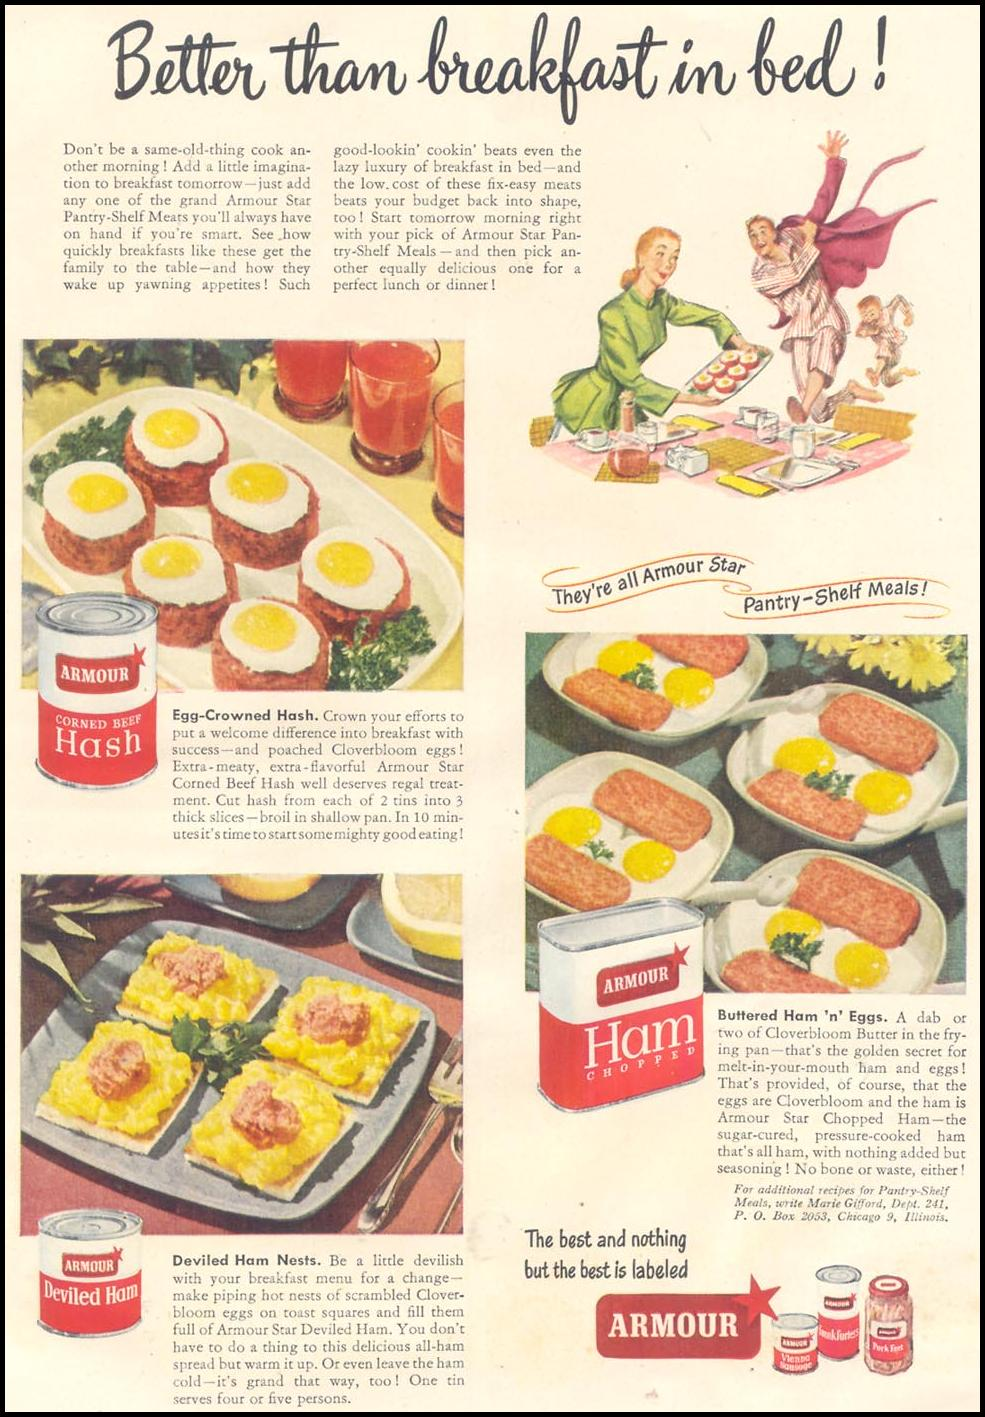 ARMOUR CANNED MEATS GOOD HOUSEKEEPING 07/01/1948 p. 161